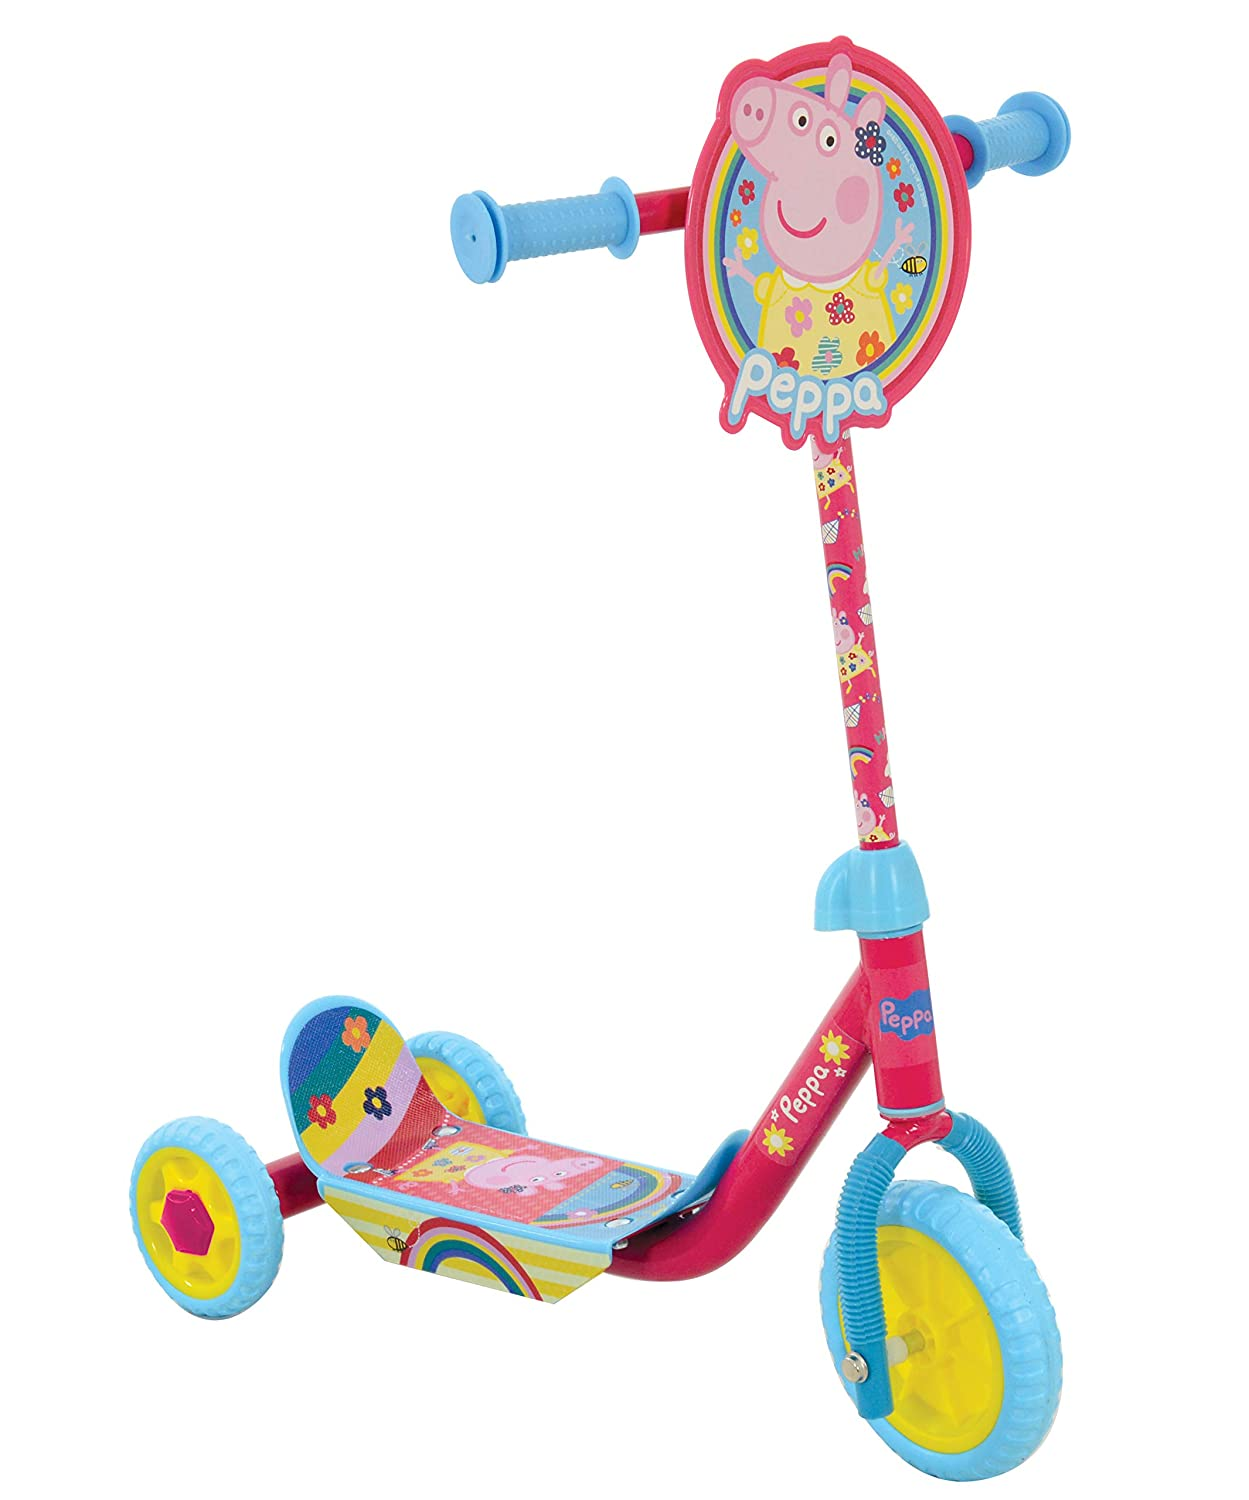 MV Sports Peppa Pig Tri-Scooter M14703: Amazon.es: Juguetes ...